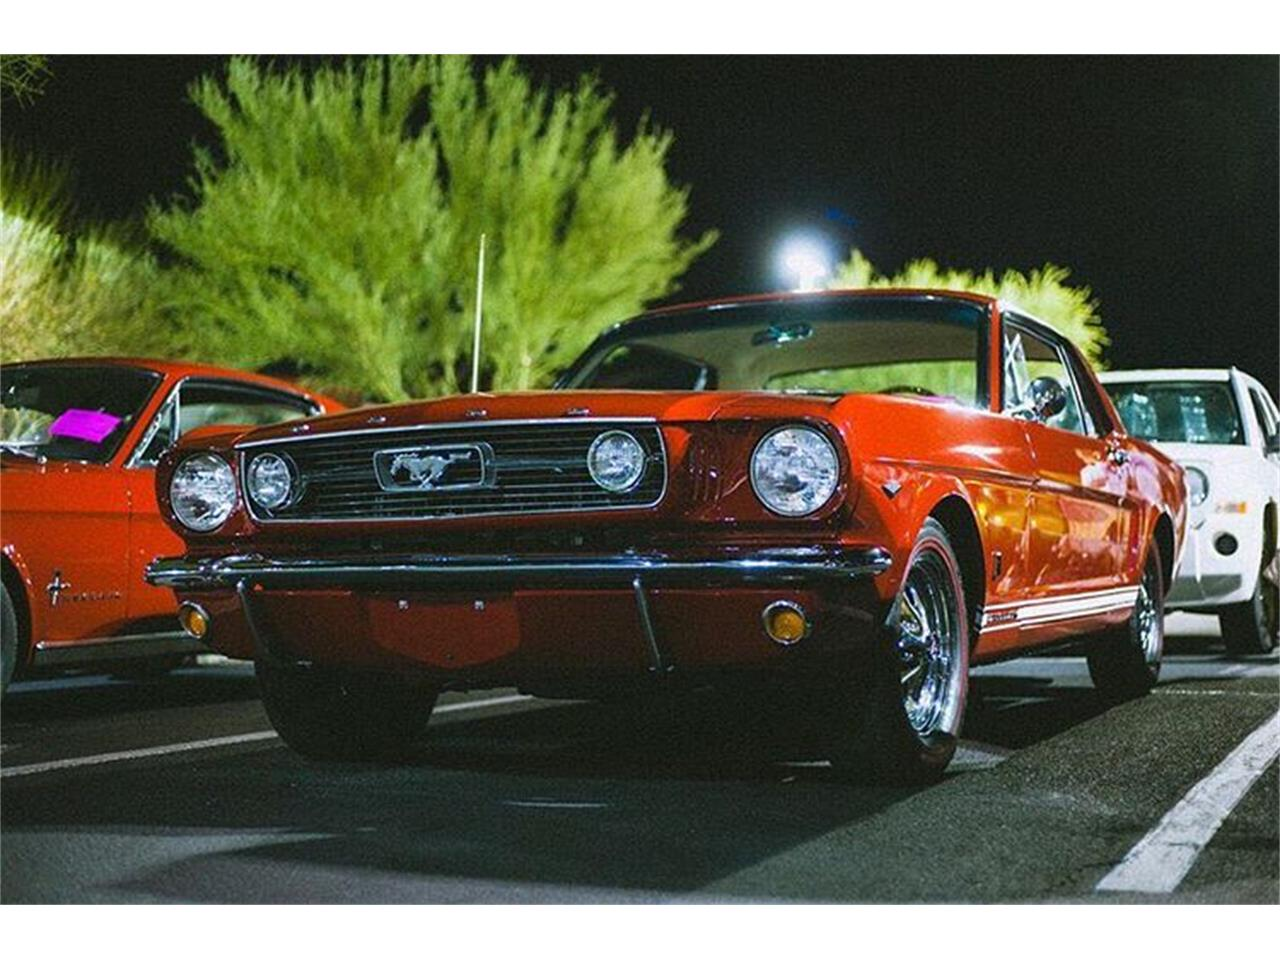 Large Picture of '66 Ford Mustang GT - $40,000.00 Offered by a Private Seller - PSDQ